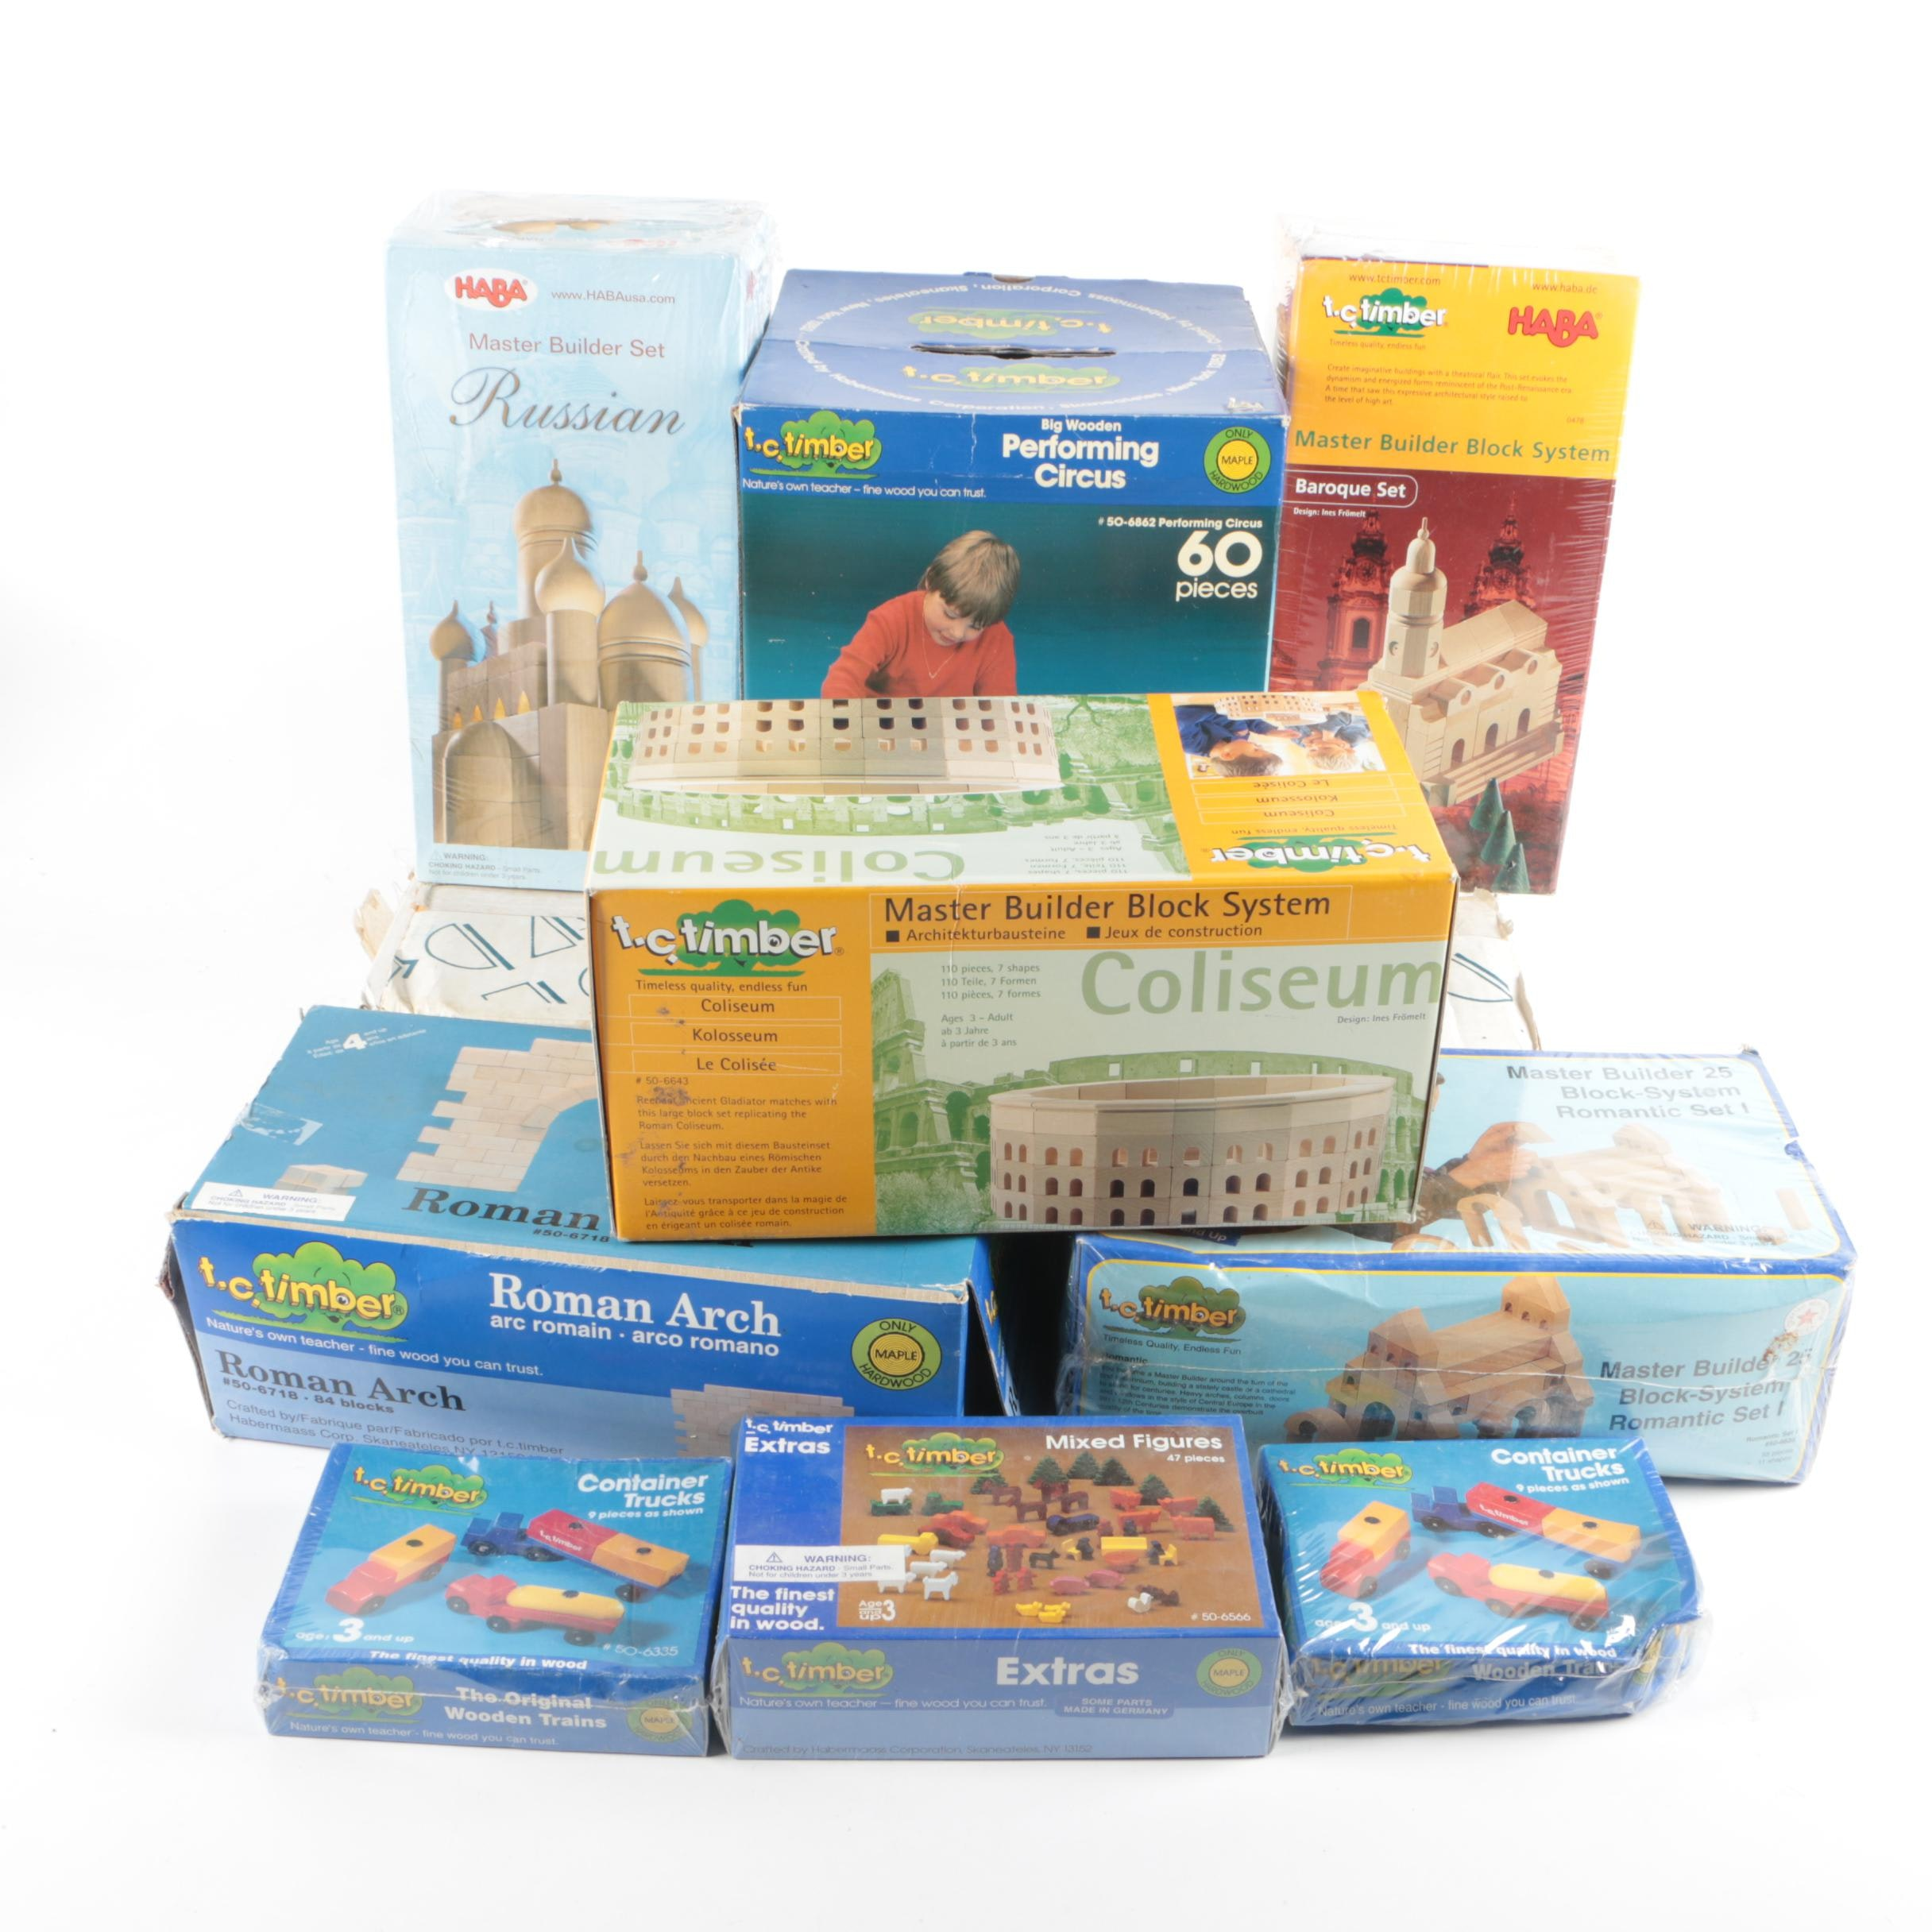 Building Block Toys, Including HABA and T.C. Timber